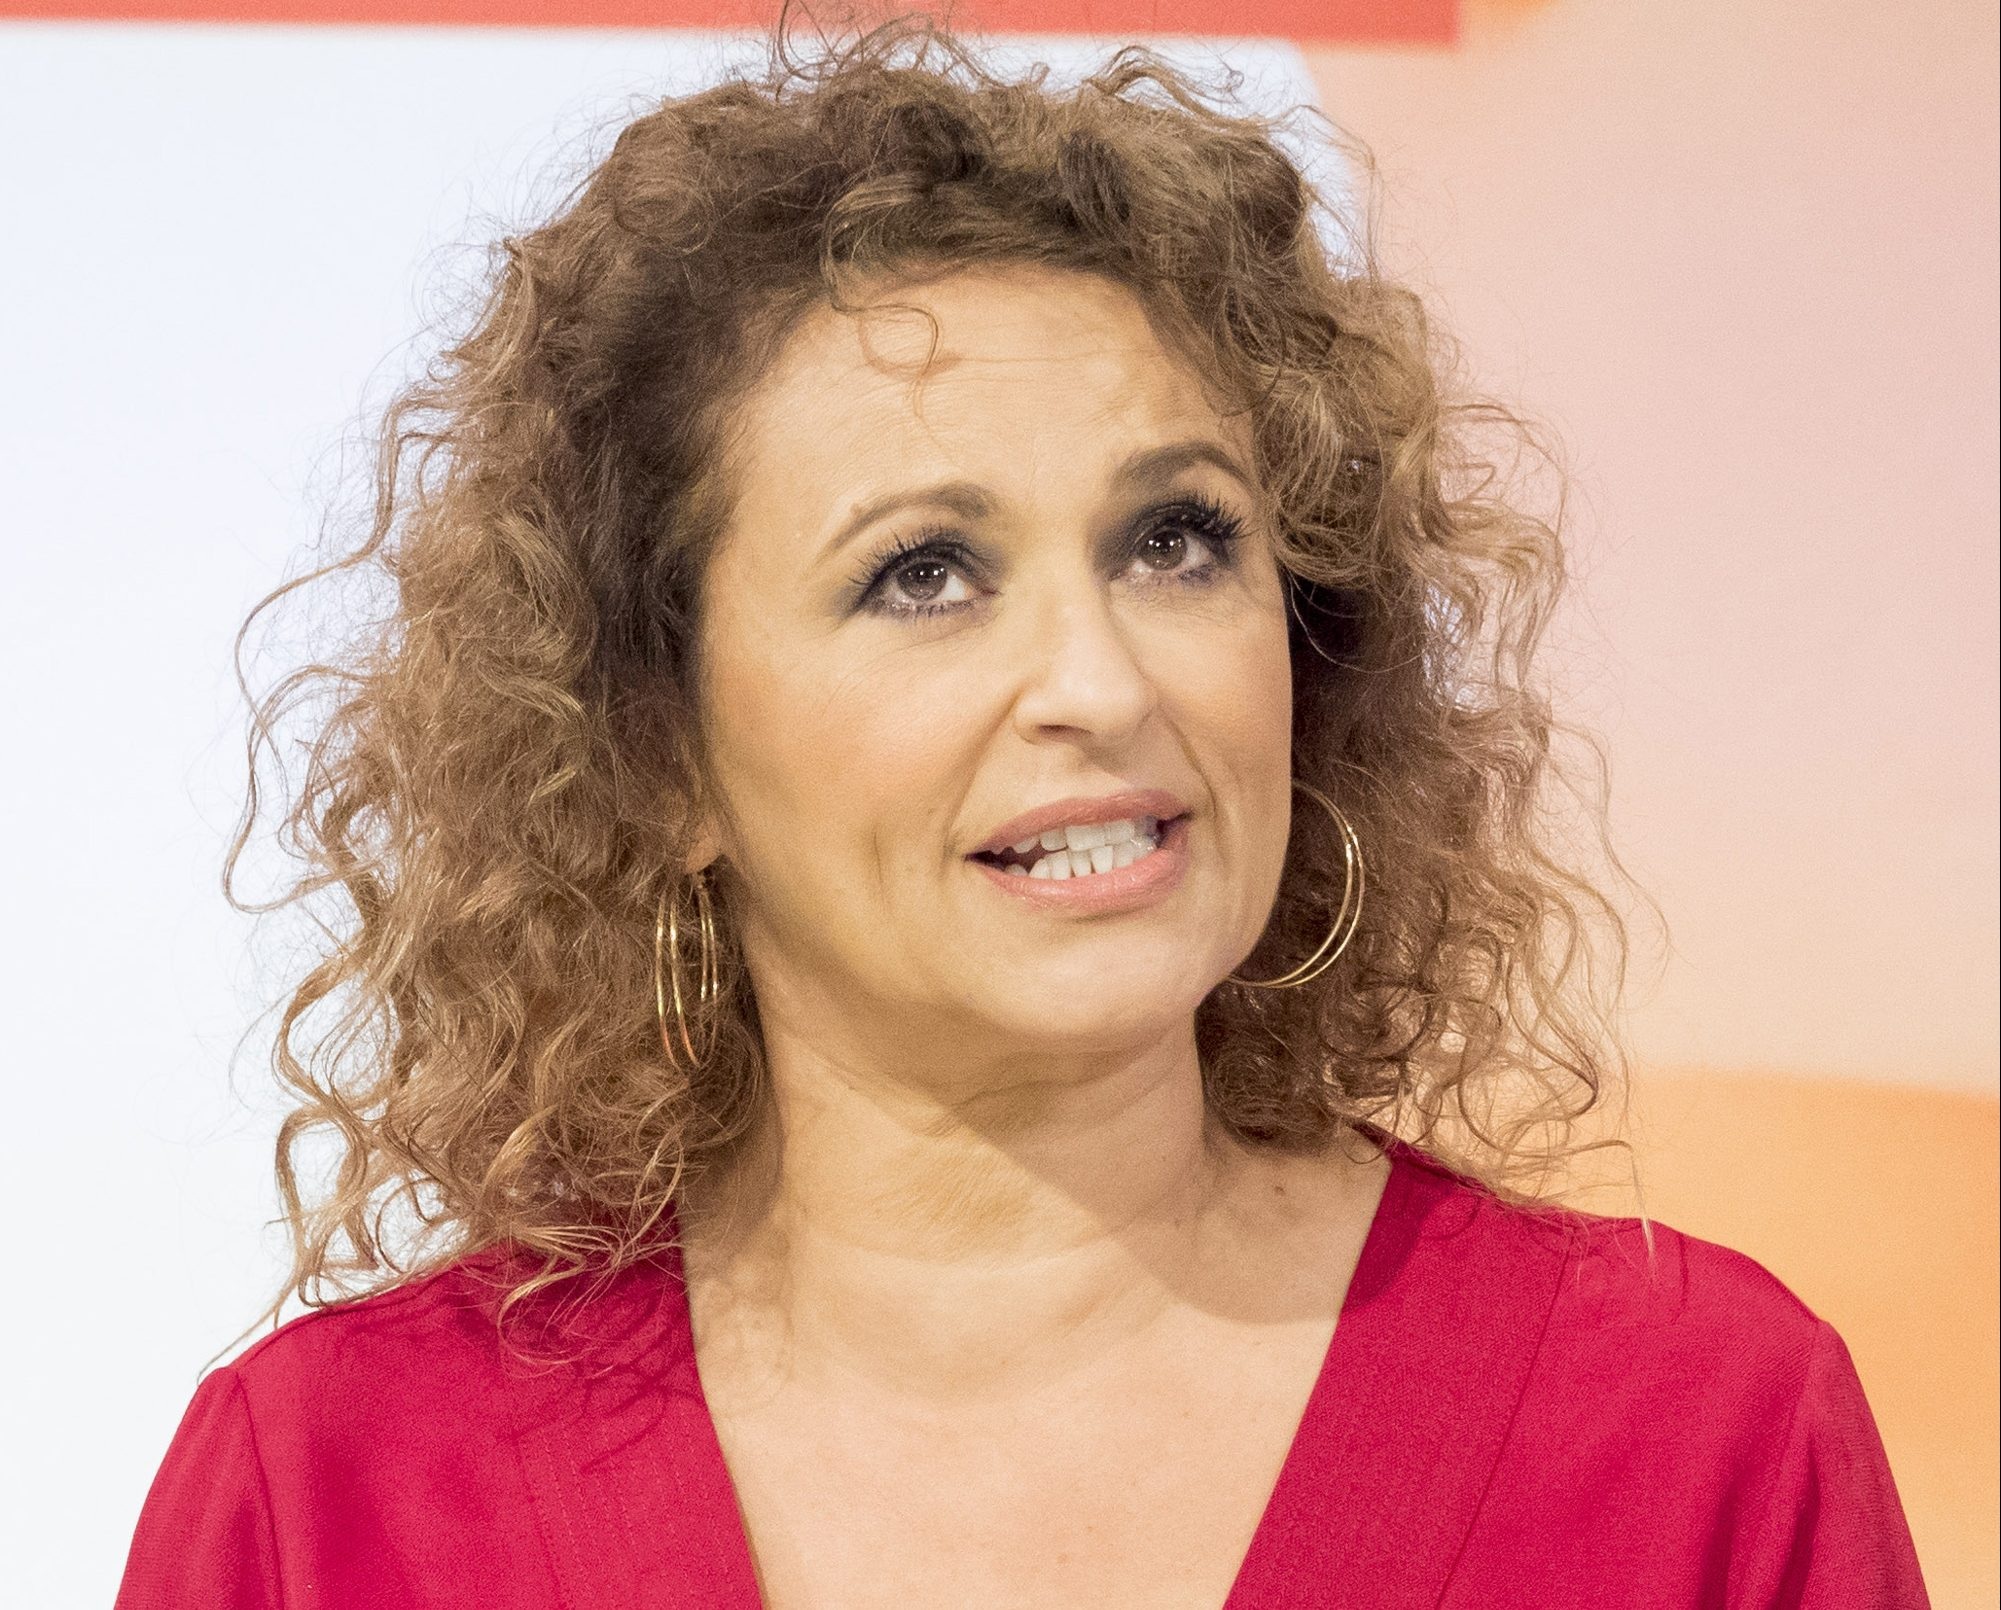 I Feel So Lonely': Nadia Sawalha On The Menopause Symptom That Leaves Her Feeling Isolated